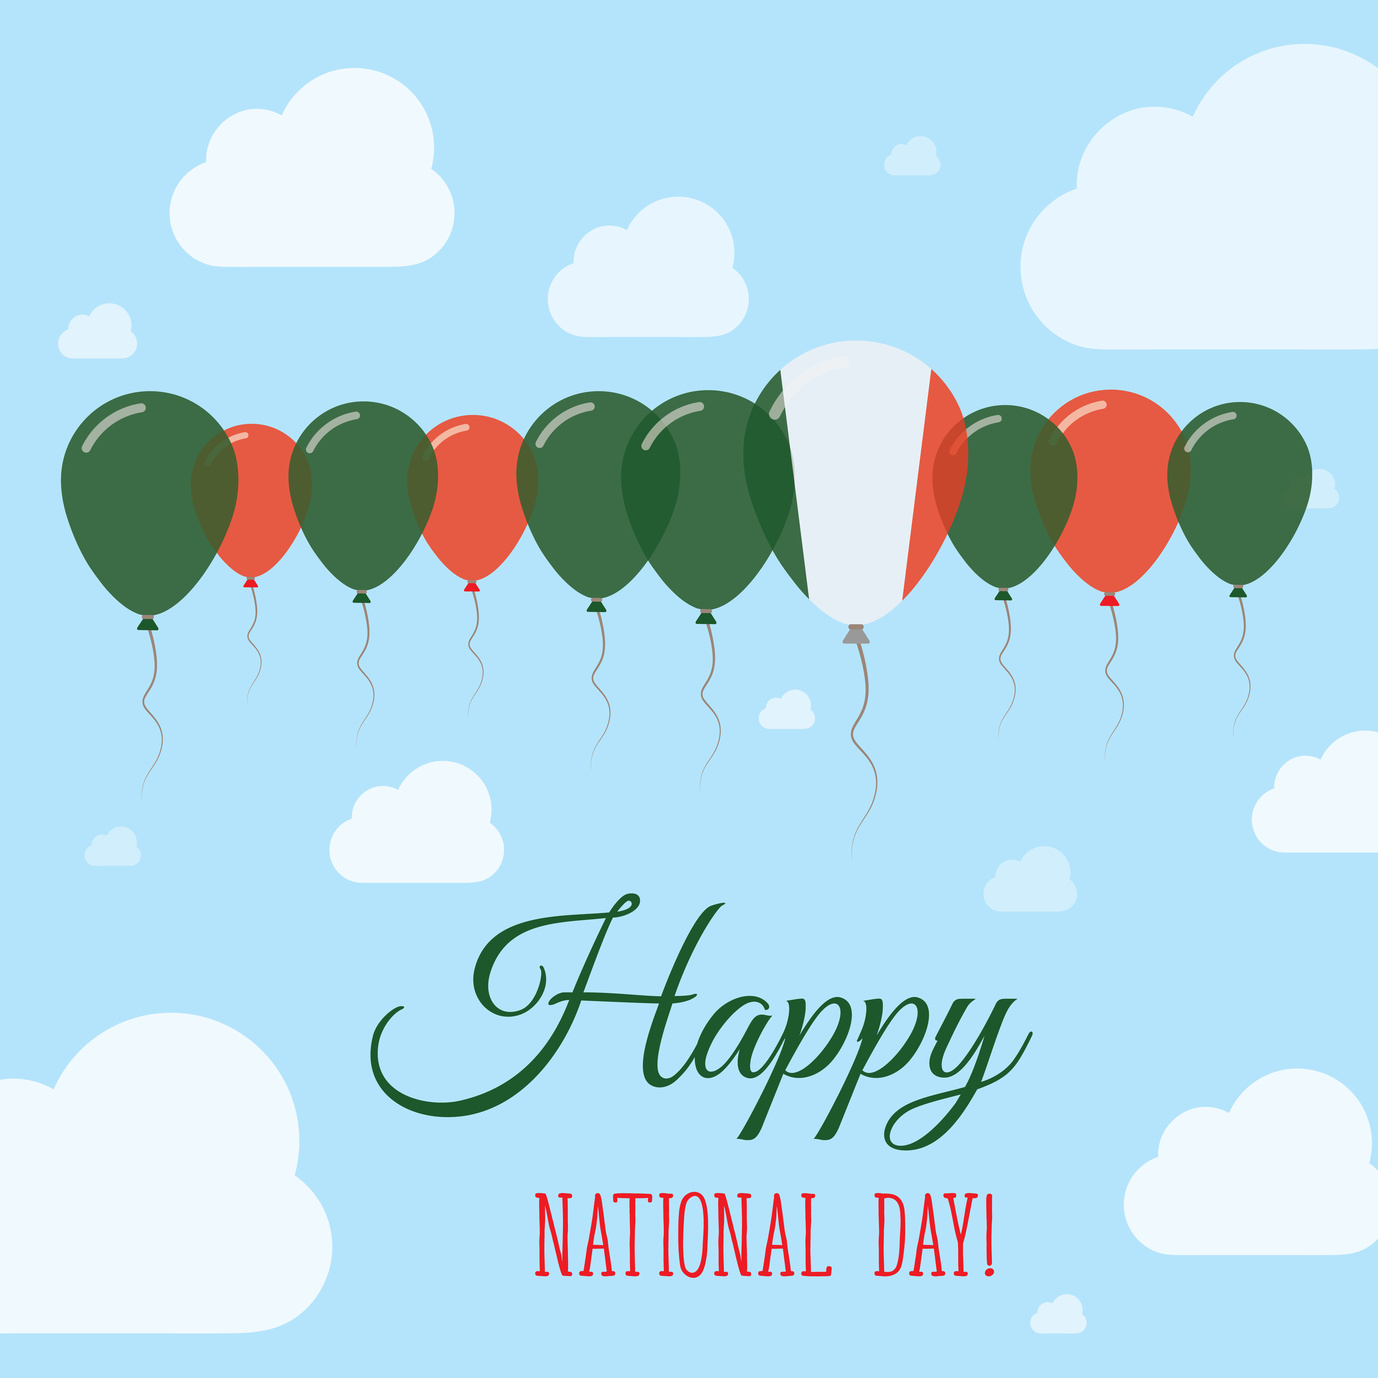 Italy National Day Flat Patriotic Poster. Row of Balloons in Colors of the Italian flag. Happy National Day Card with Flags, Balloons, Clouds and Sky.